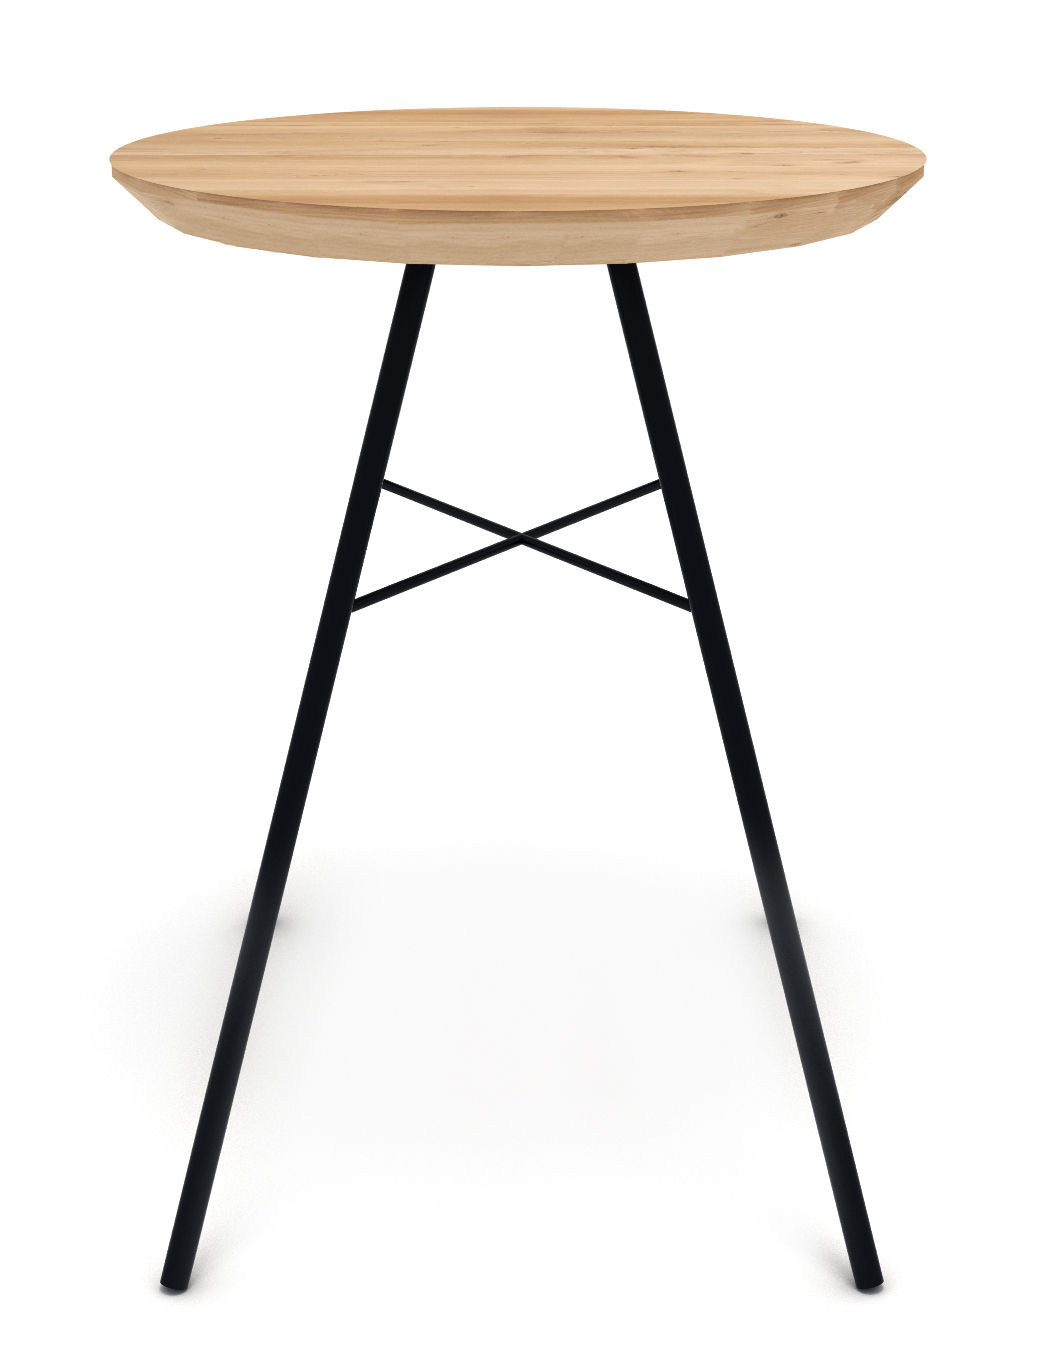 disc stool wood metal h 46 cm natural oak black by. Black Bedroom Furniture Sets. Home Design Ideas